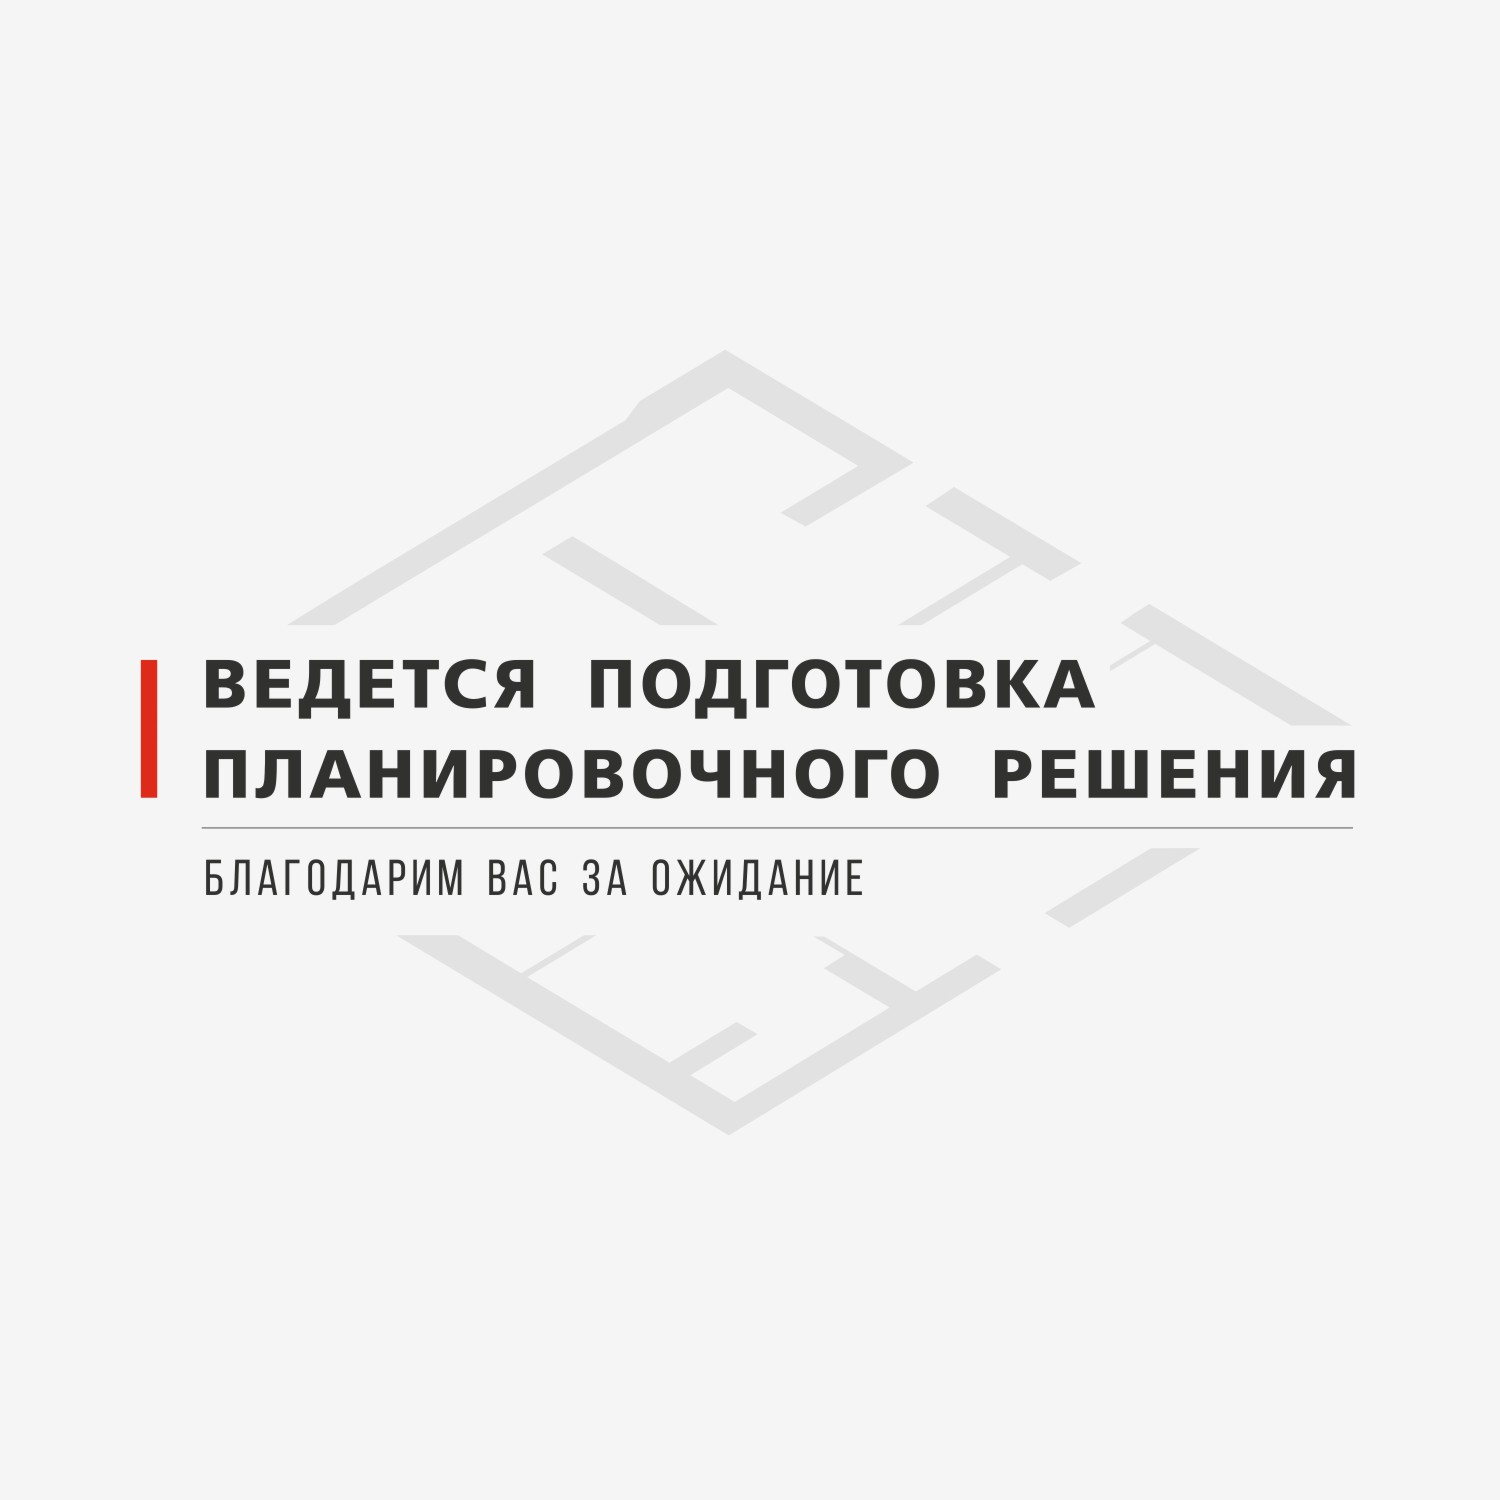 Купить однокомнатную квартиру в новостройке г Москва, ул Лобачевского, д 120 - World Real Estate Service «PUSH-KA», объявление №189315